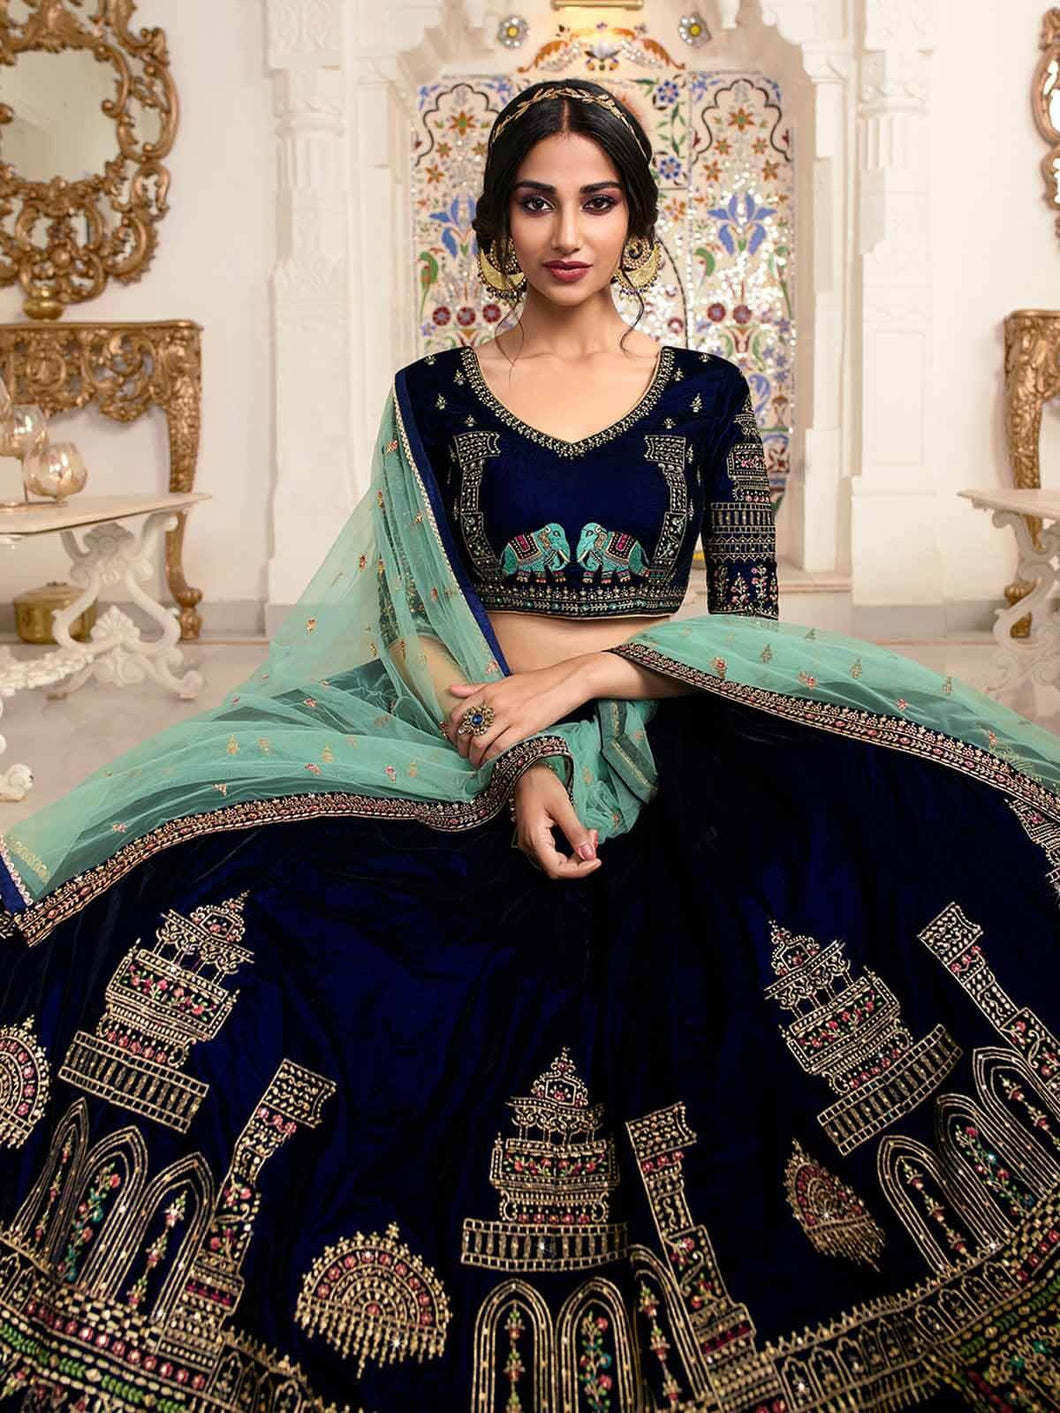 Navy Blue Semi-Stitched Heavy Embroidered Lehenga Choli Set - The Wedding Brigade